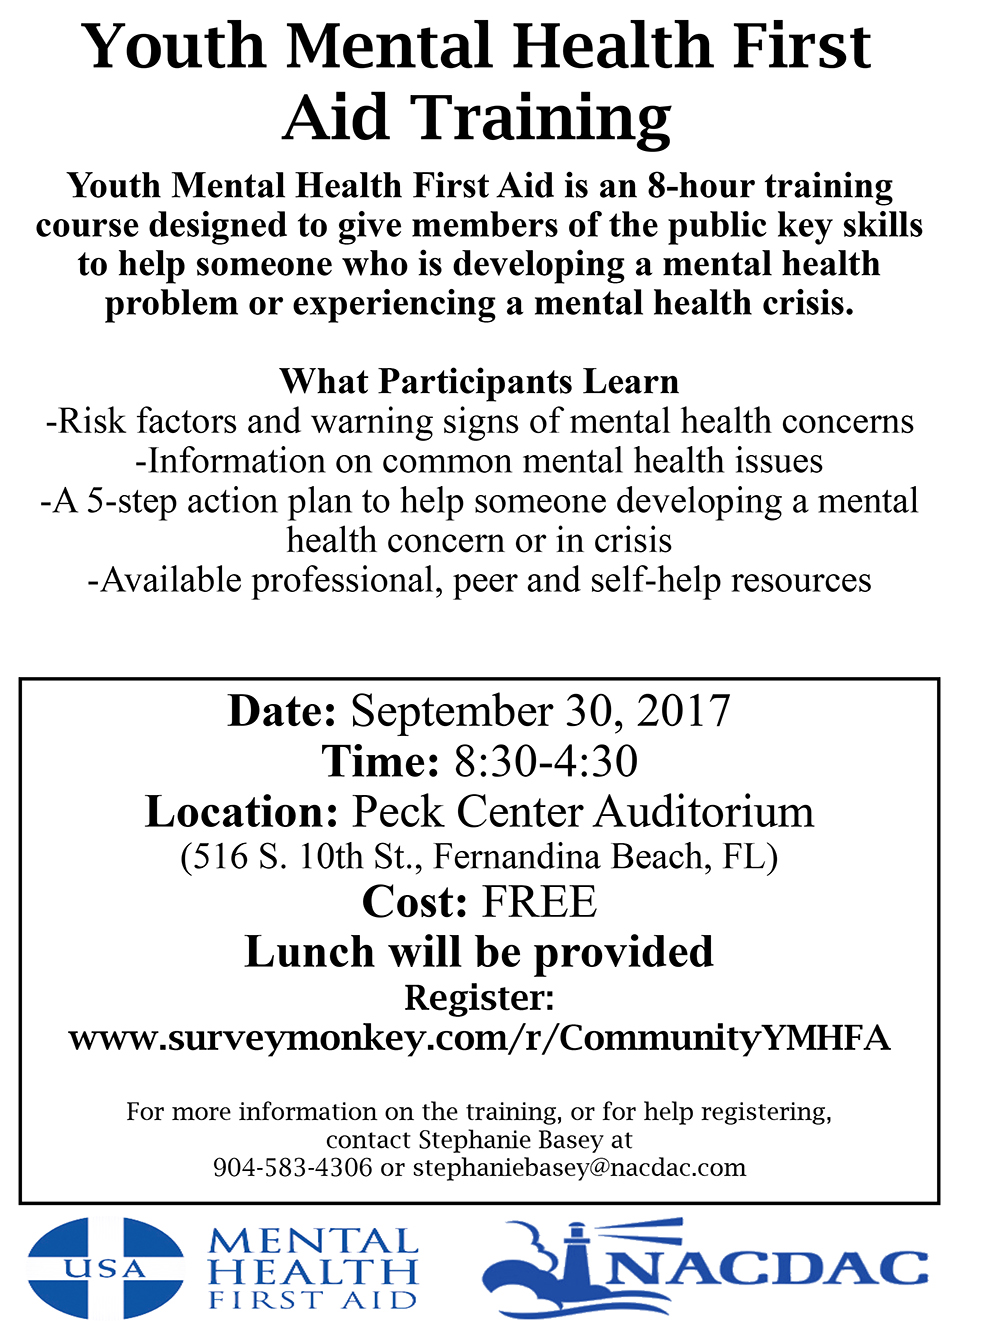 Register Now For Youth Mental Health First Aid Class